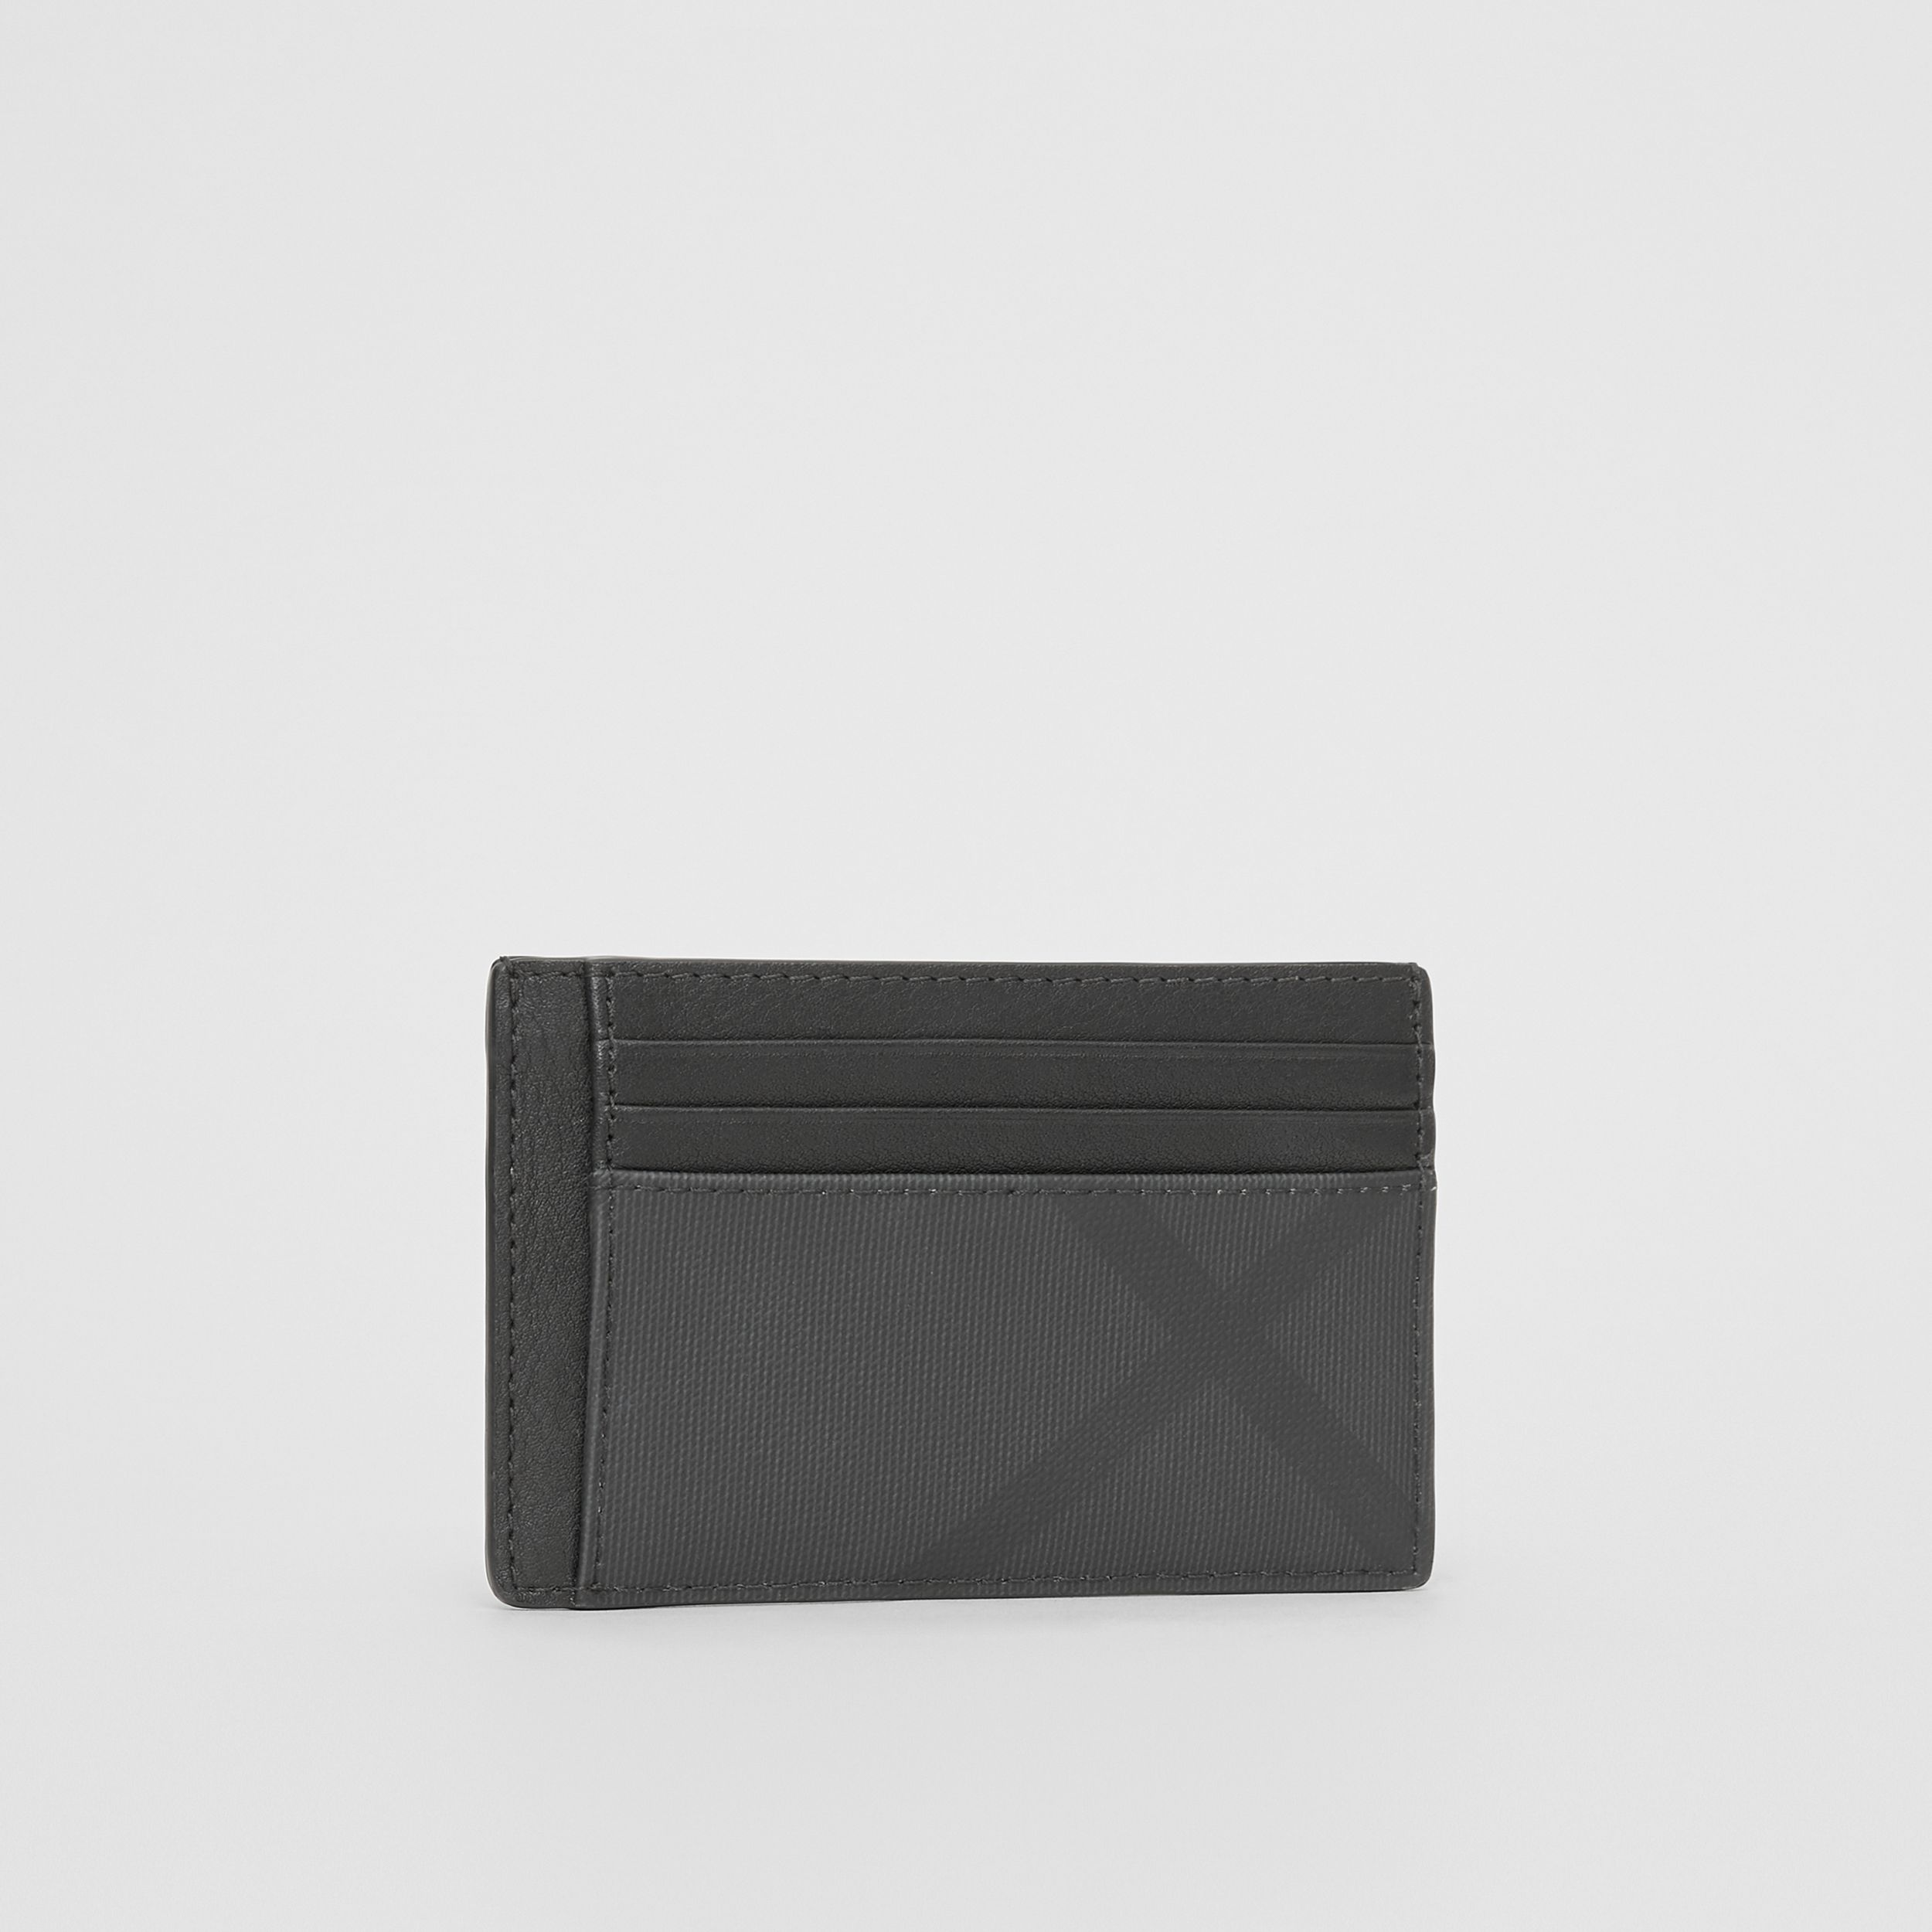 London Check and Leather Money Clip Card Case in Dark Charcoal - Men | Burberry Hong Kong S.A.R. - 4